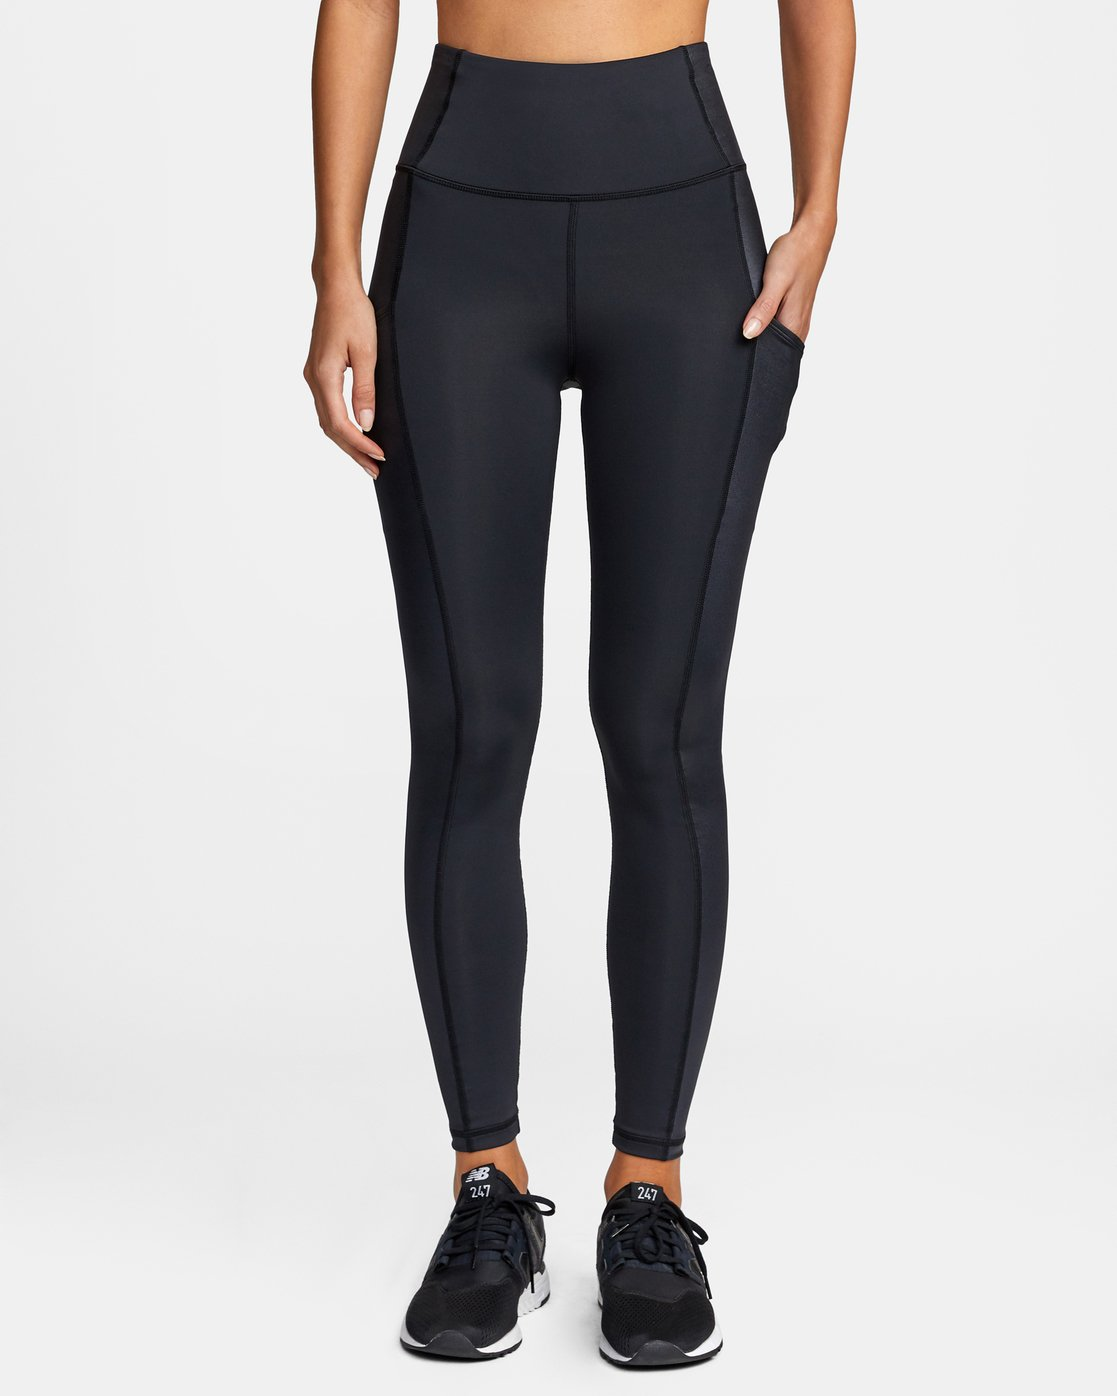 0 SKY HIGH SPORT LEGGING Black AVJNS00105 RVCA